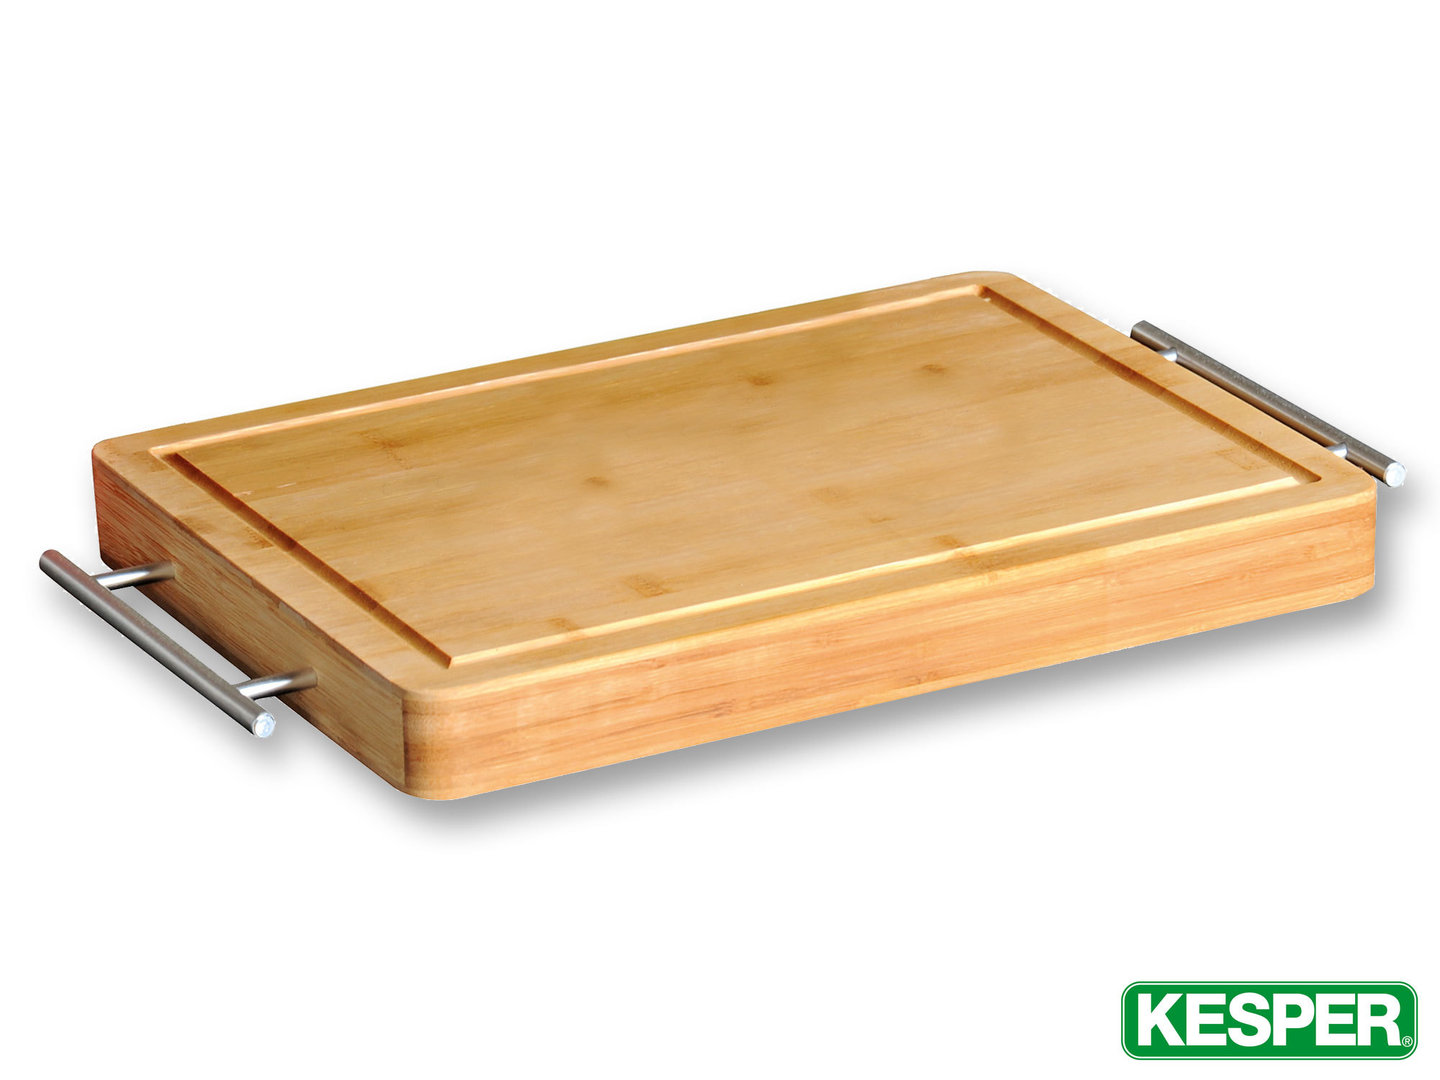 KESPER bamboo cutting board 38 x 28 x 4 cm with juice rim and stainless steel handles